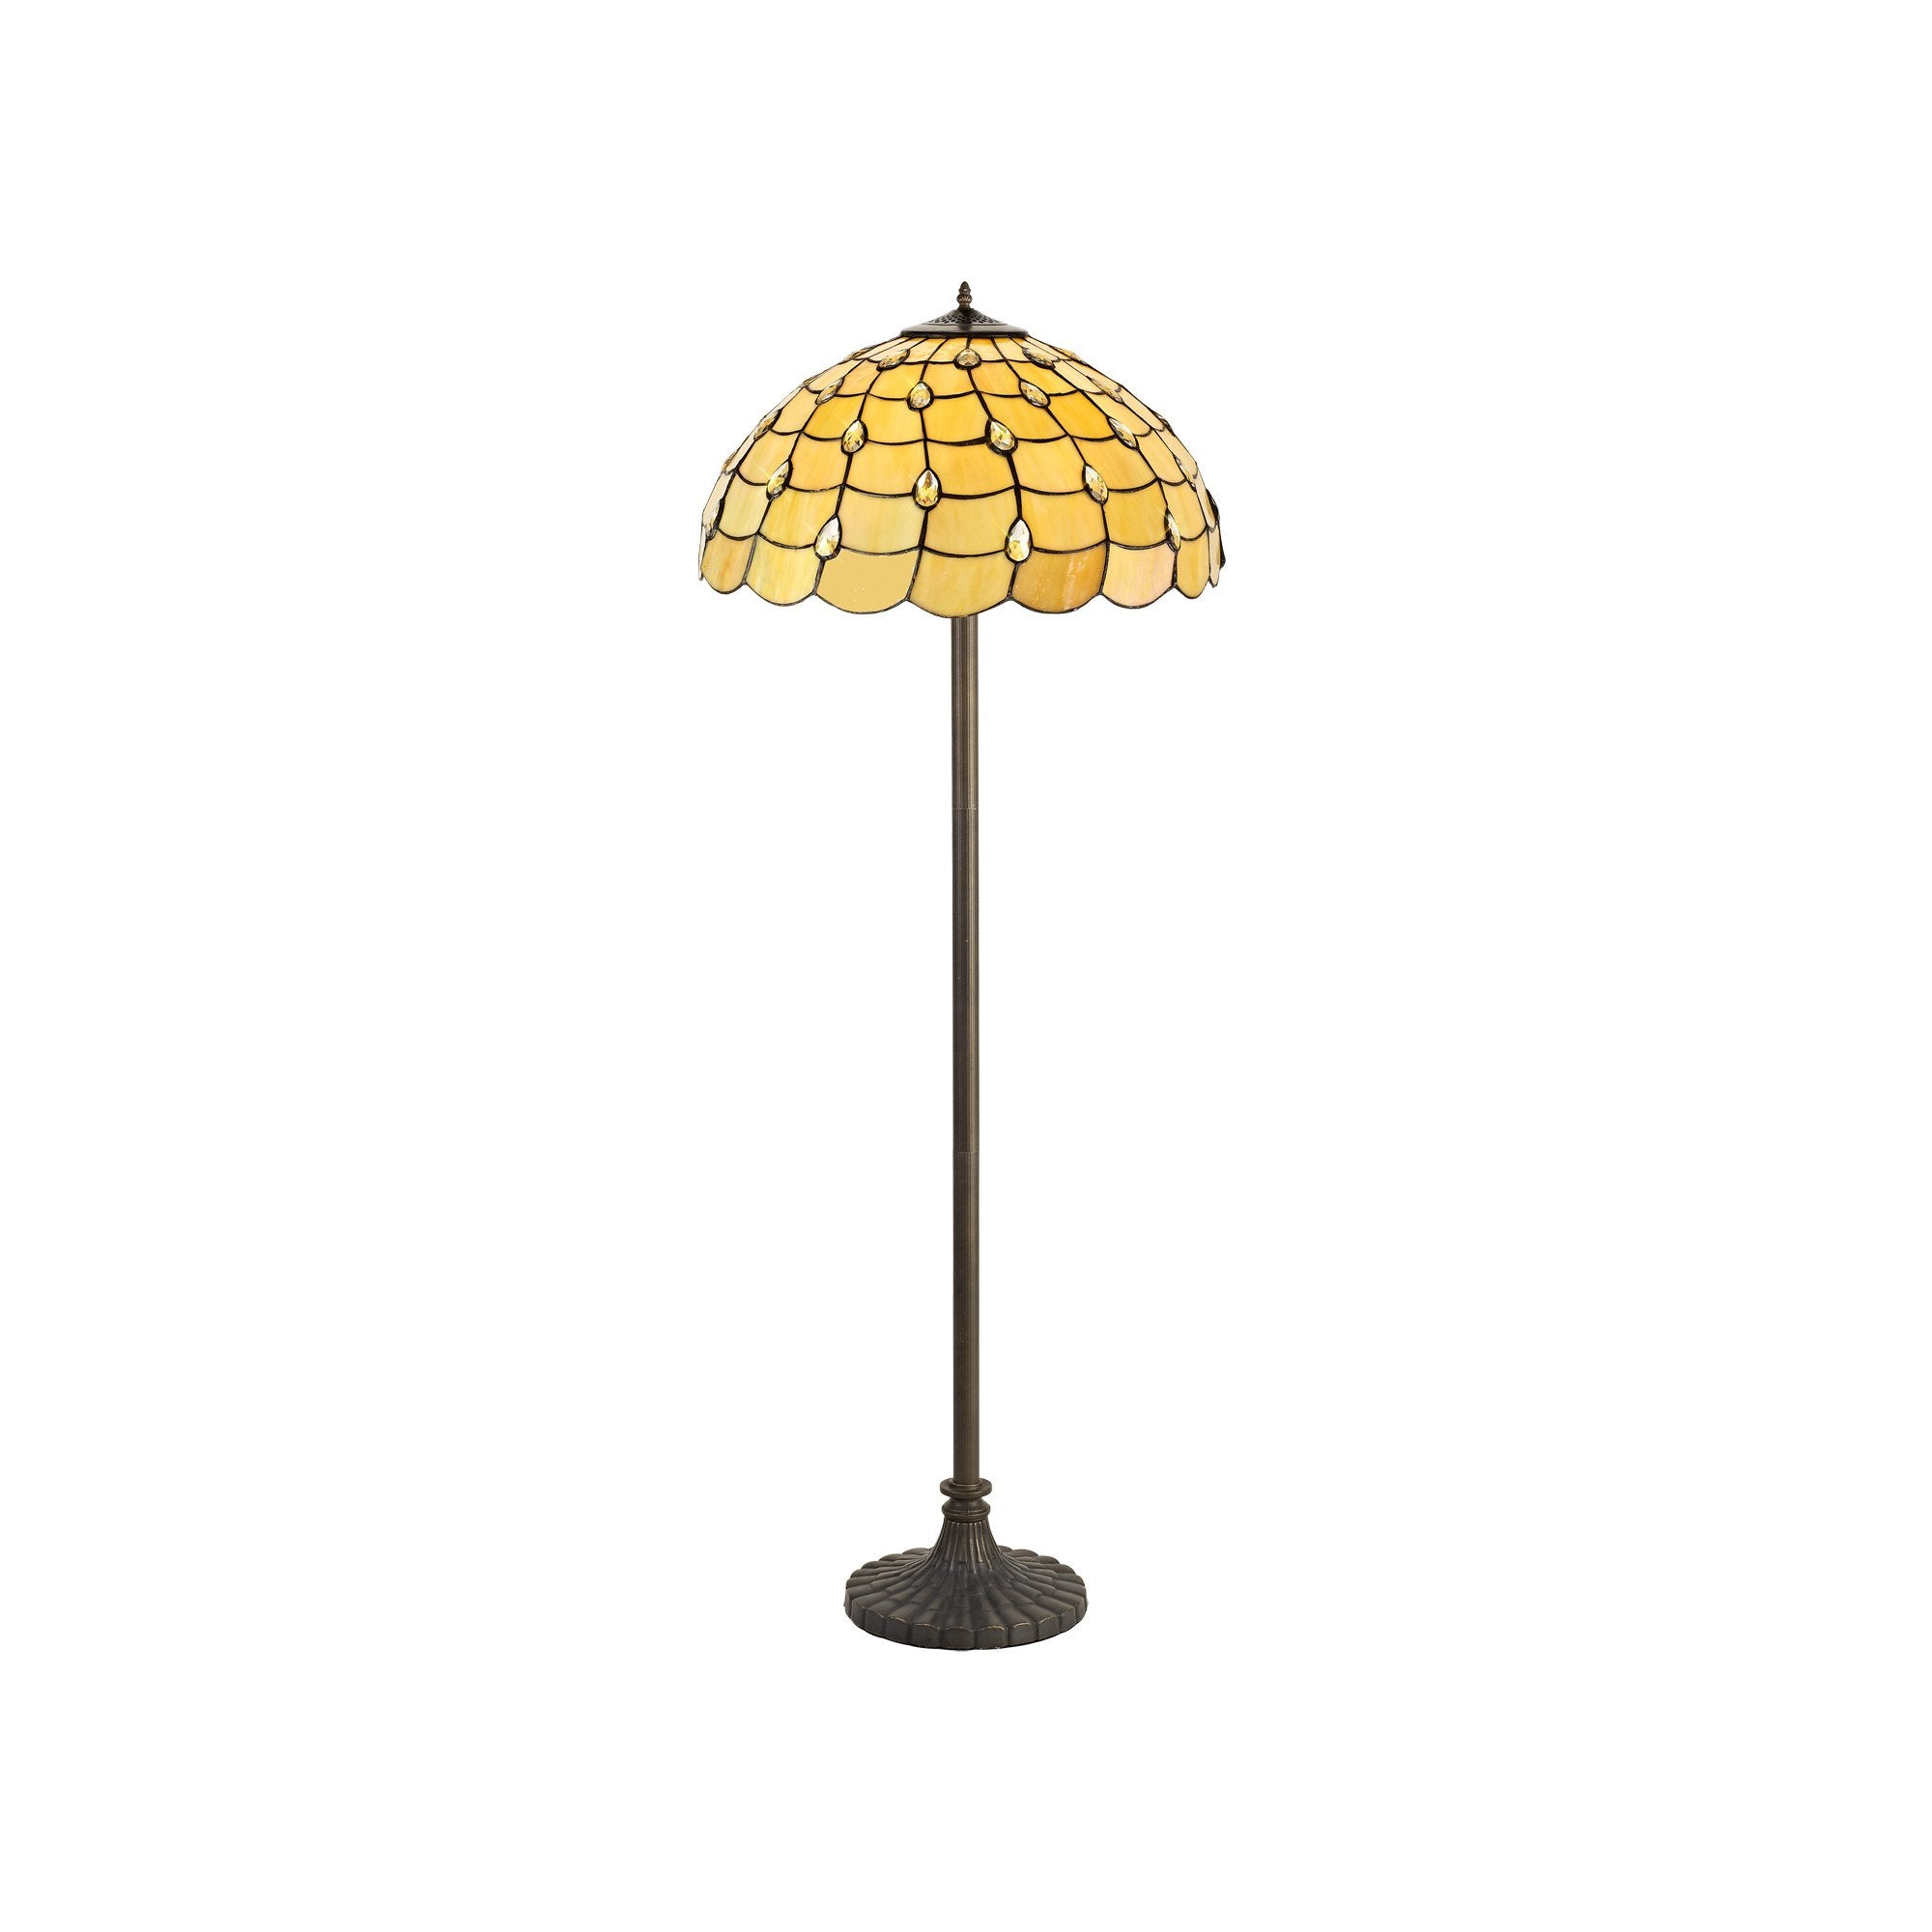 HONEY 2 Light Stepped Design Floor Lamp E27 With 50cm Tiffany Shade, Beige/Clear Crystal/Aged Antique Brass